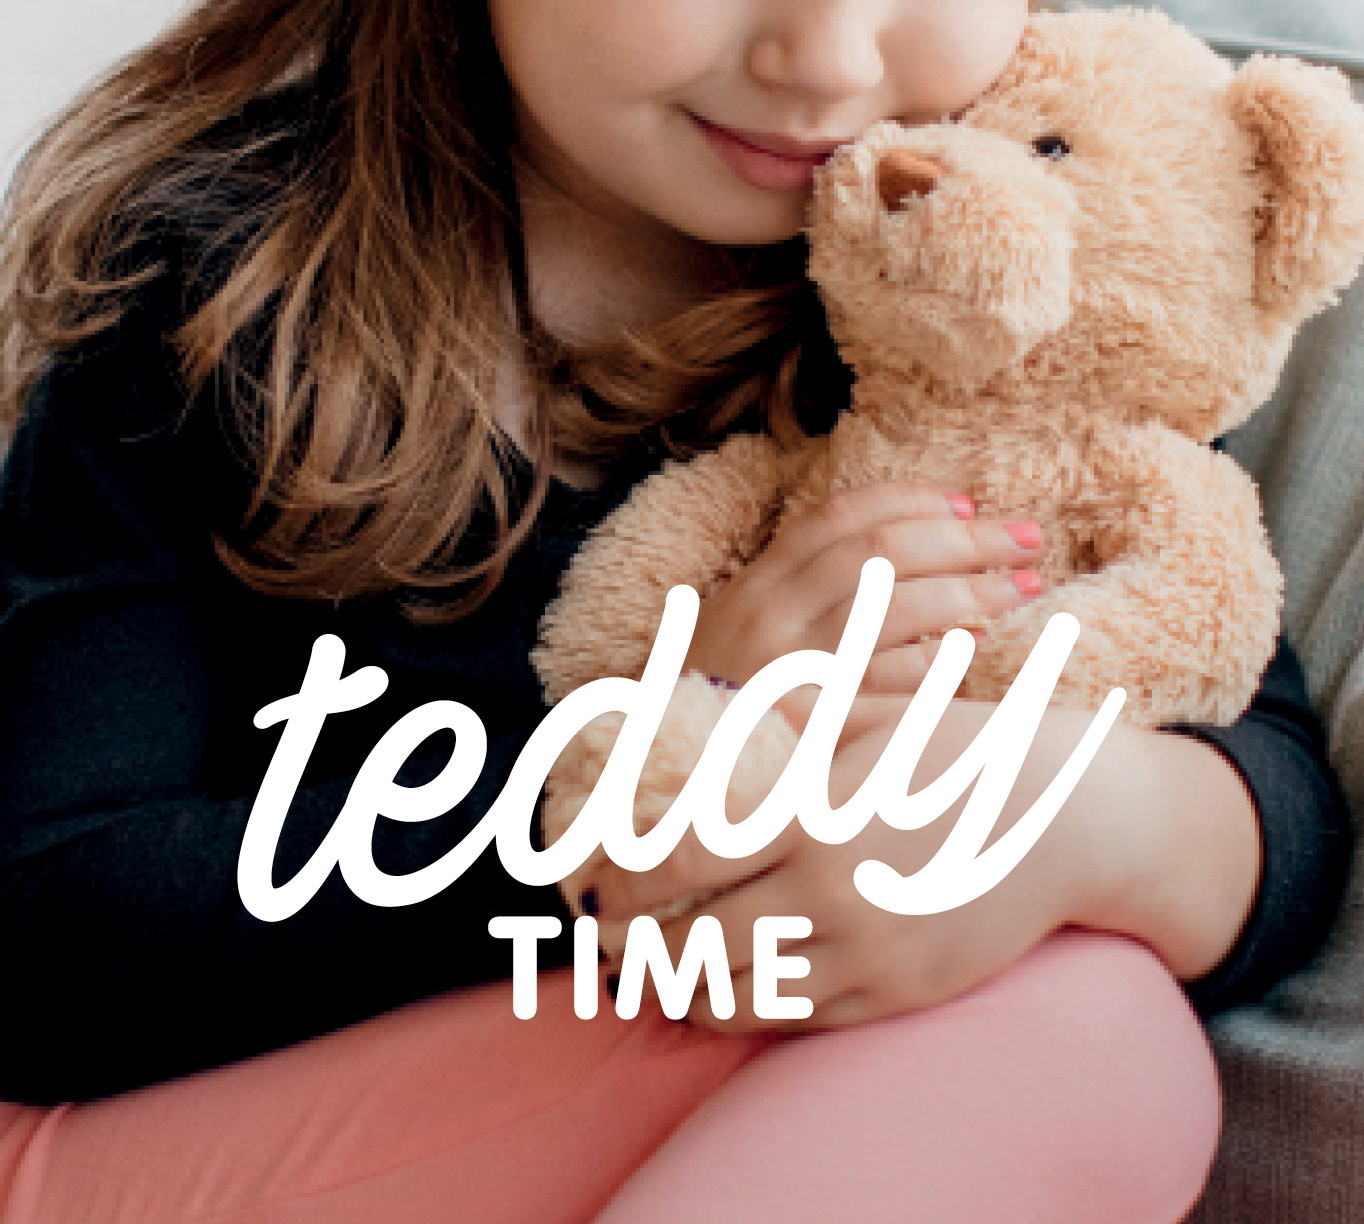 CH4814_Allenstown_SHE Teddy Activation_Web tiles_682x612px